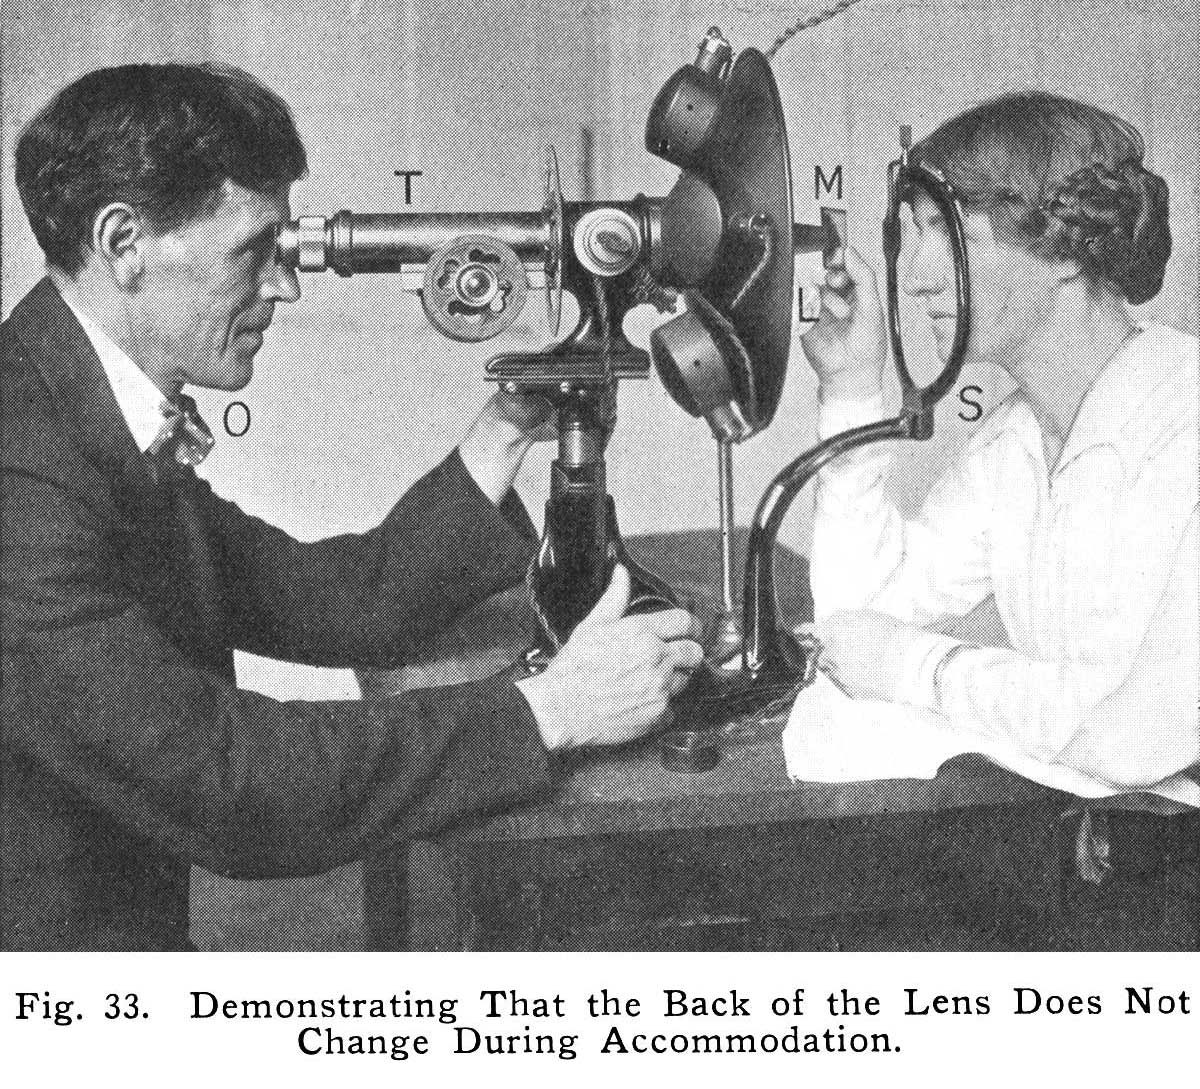 Dr. Bates showing his photography setup to prove that Helmholtz's theory of accommodation is false. Unfortunately this is still believed today!